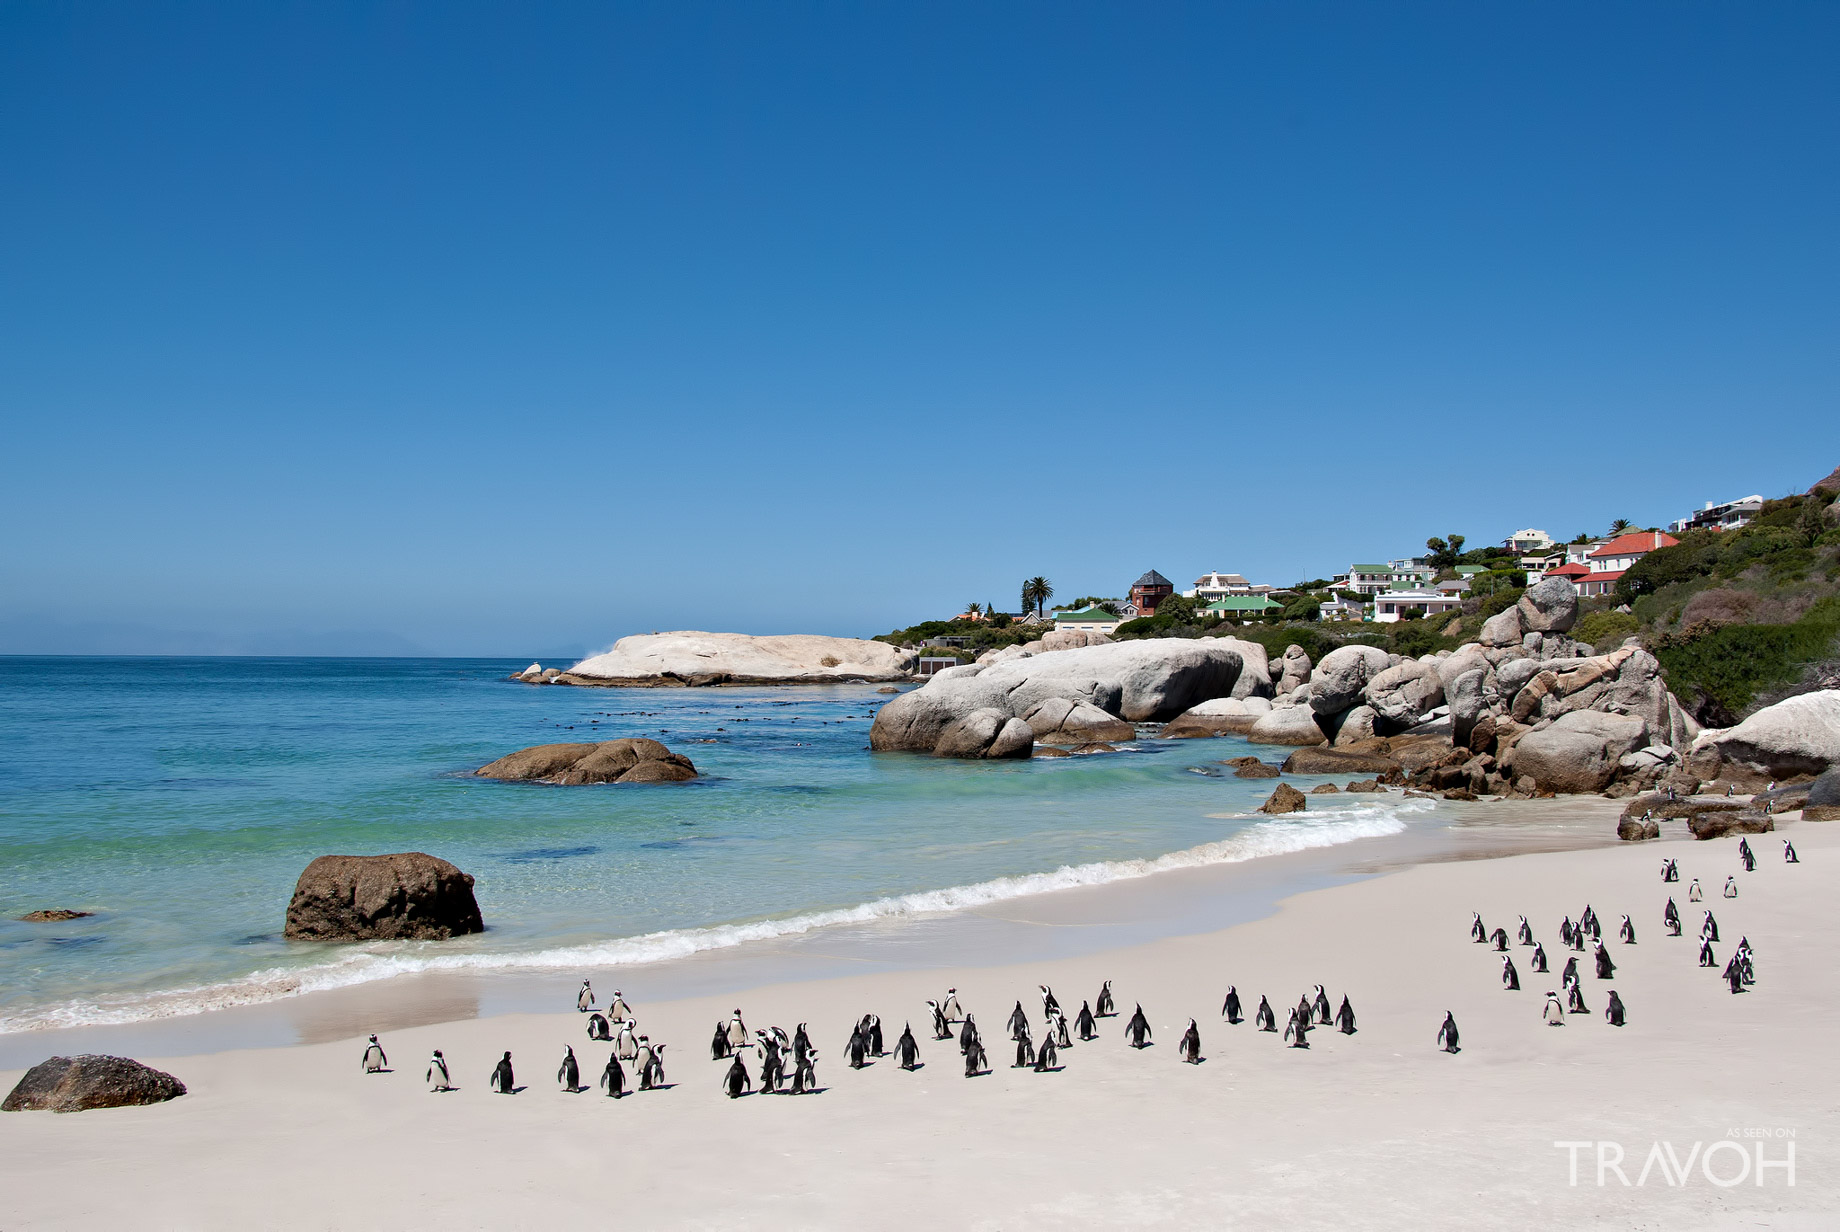 Boulders Beach - Exploring 10 of the Top Beaches in Cape Town South Africa